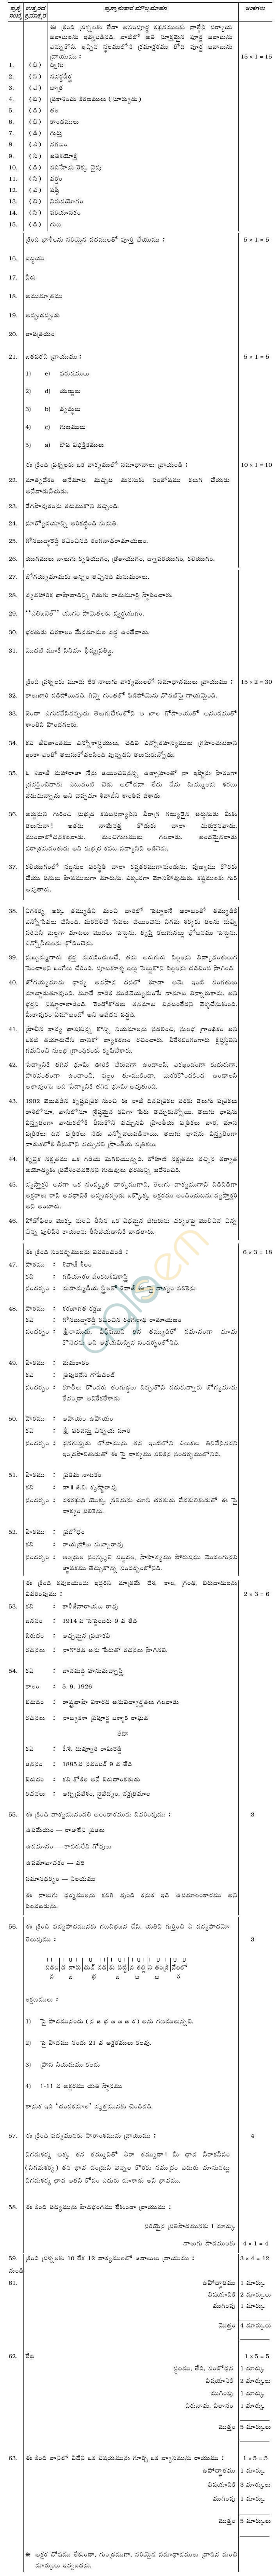 Karnataka SSLC Solved Question Paper June 2014 - Telgu